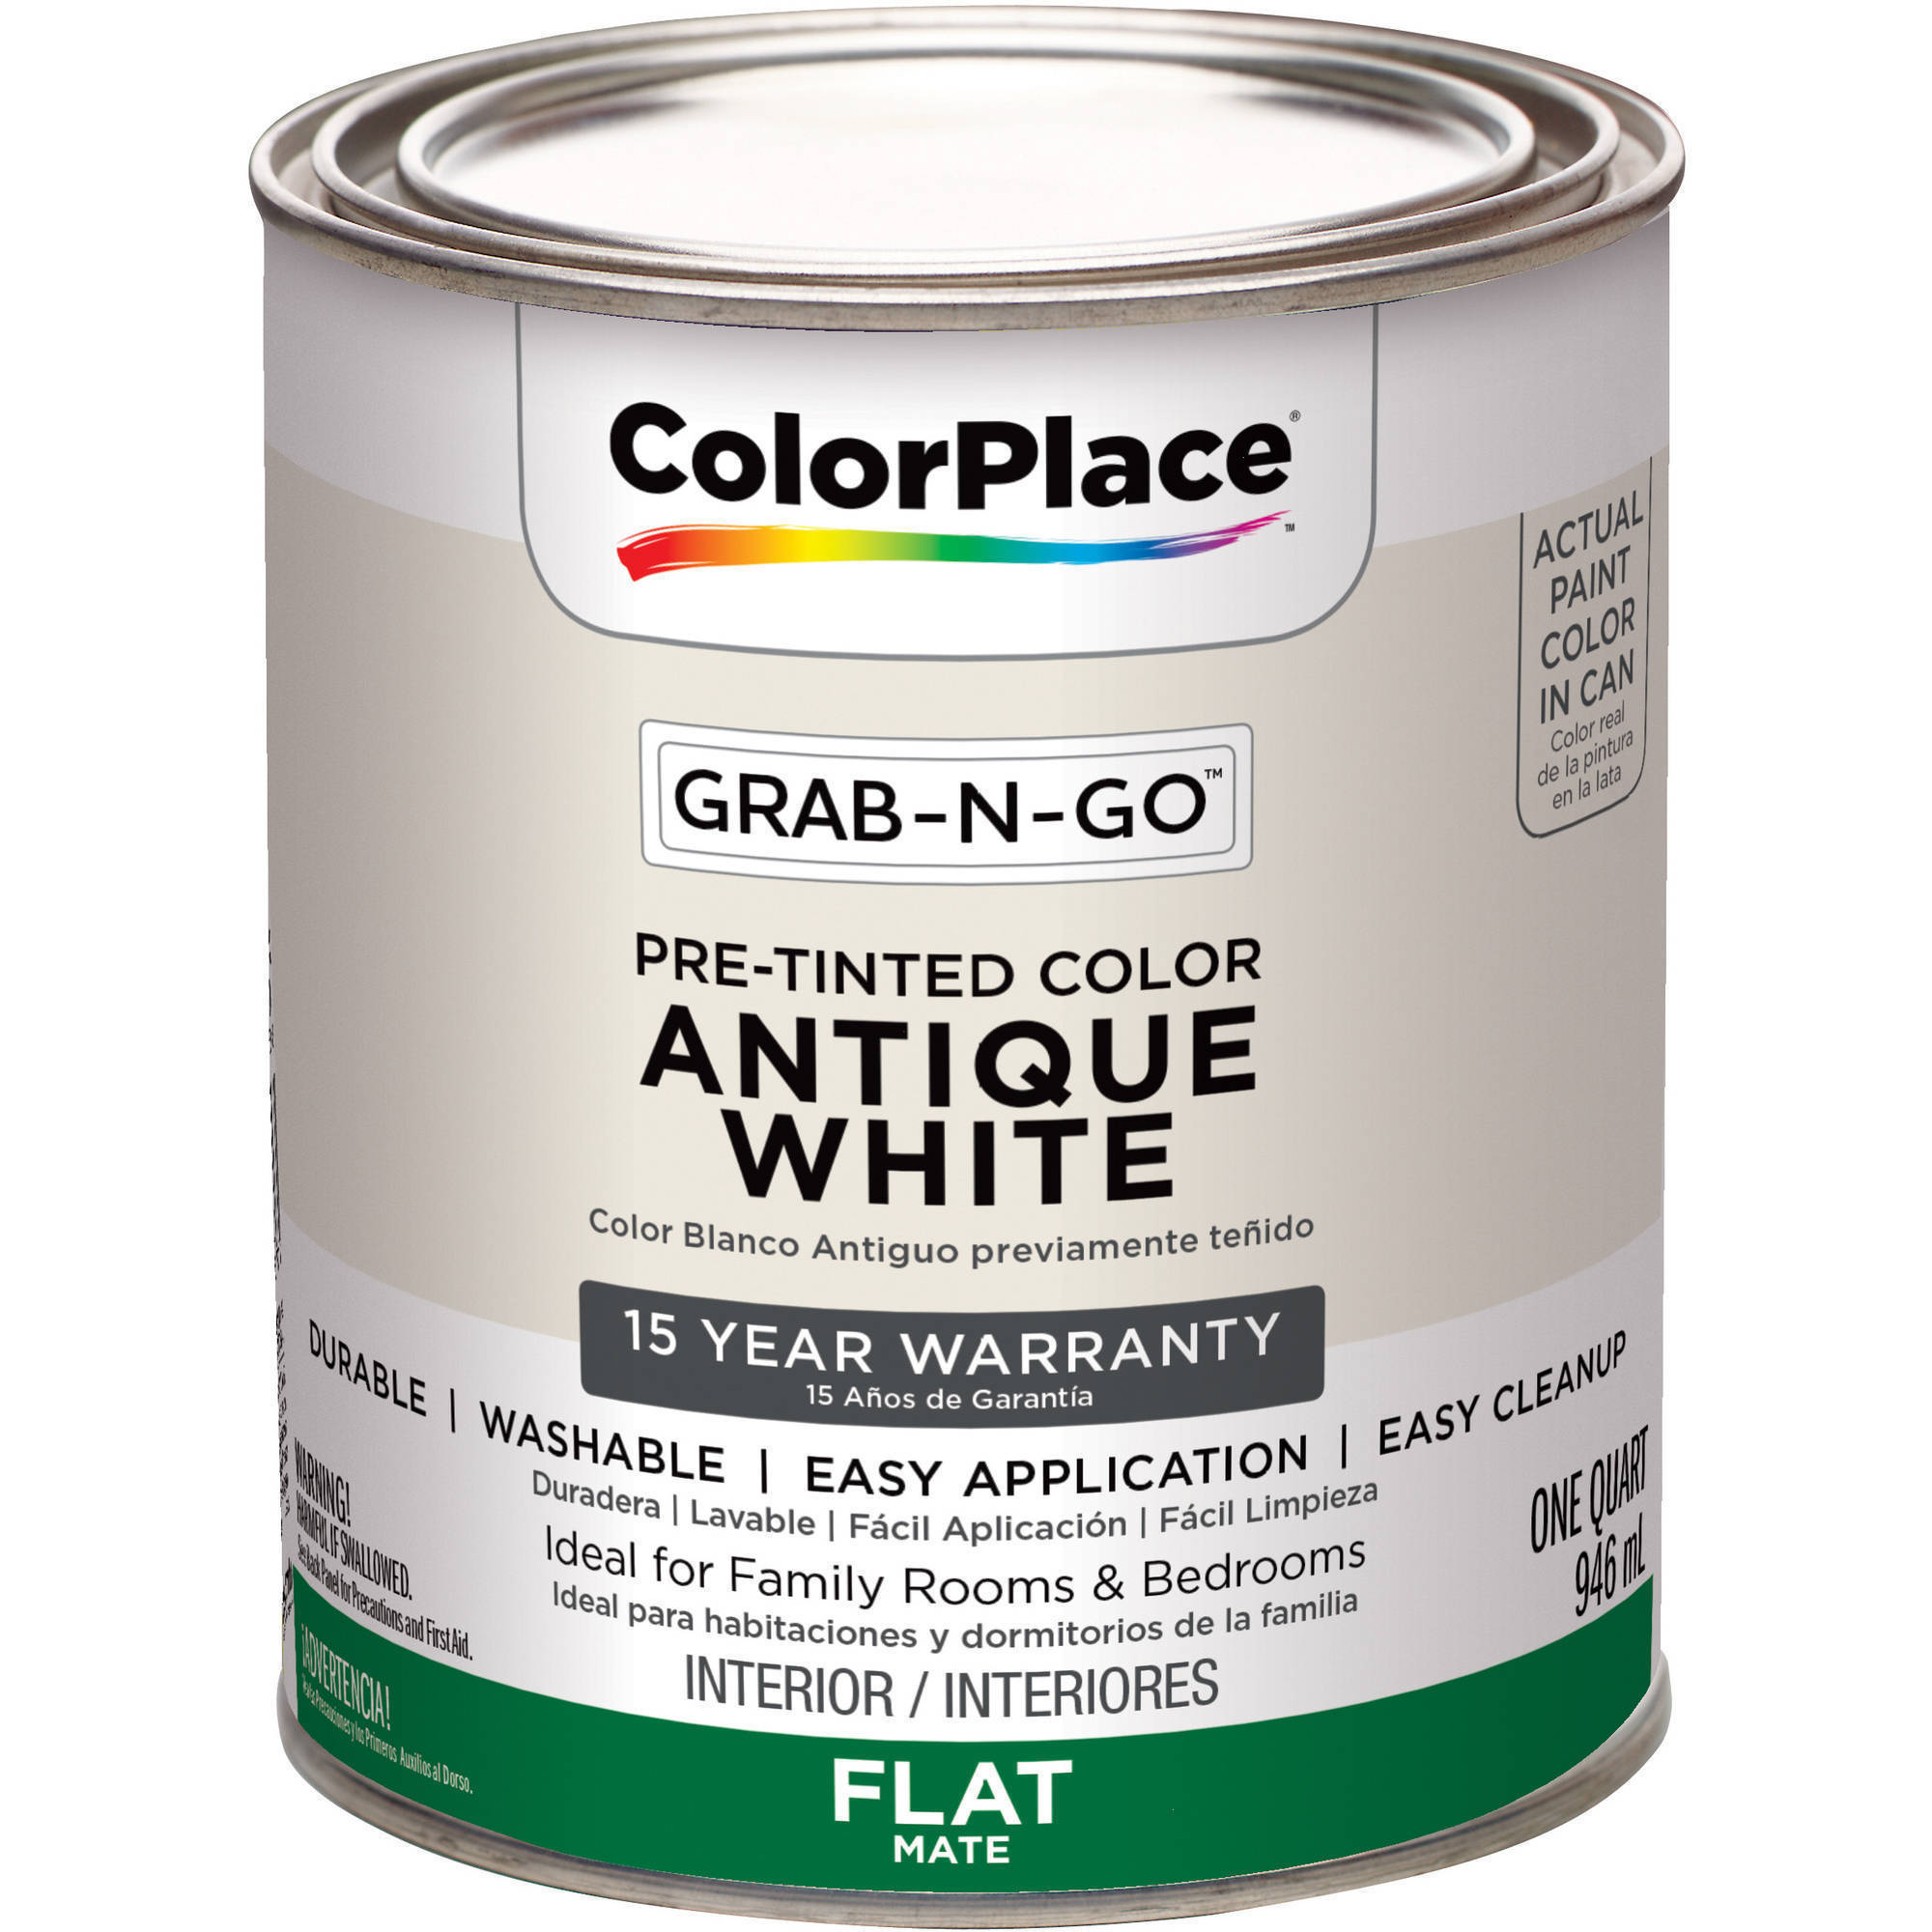 ColorPlace Grab-N-Go Antique White Interior Paint With